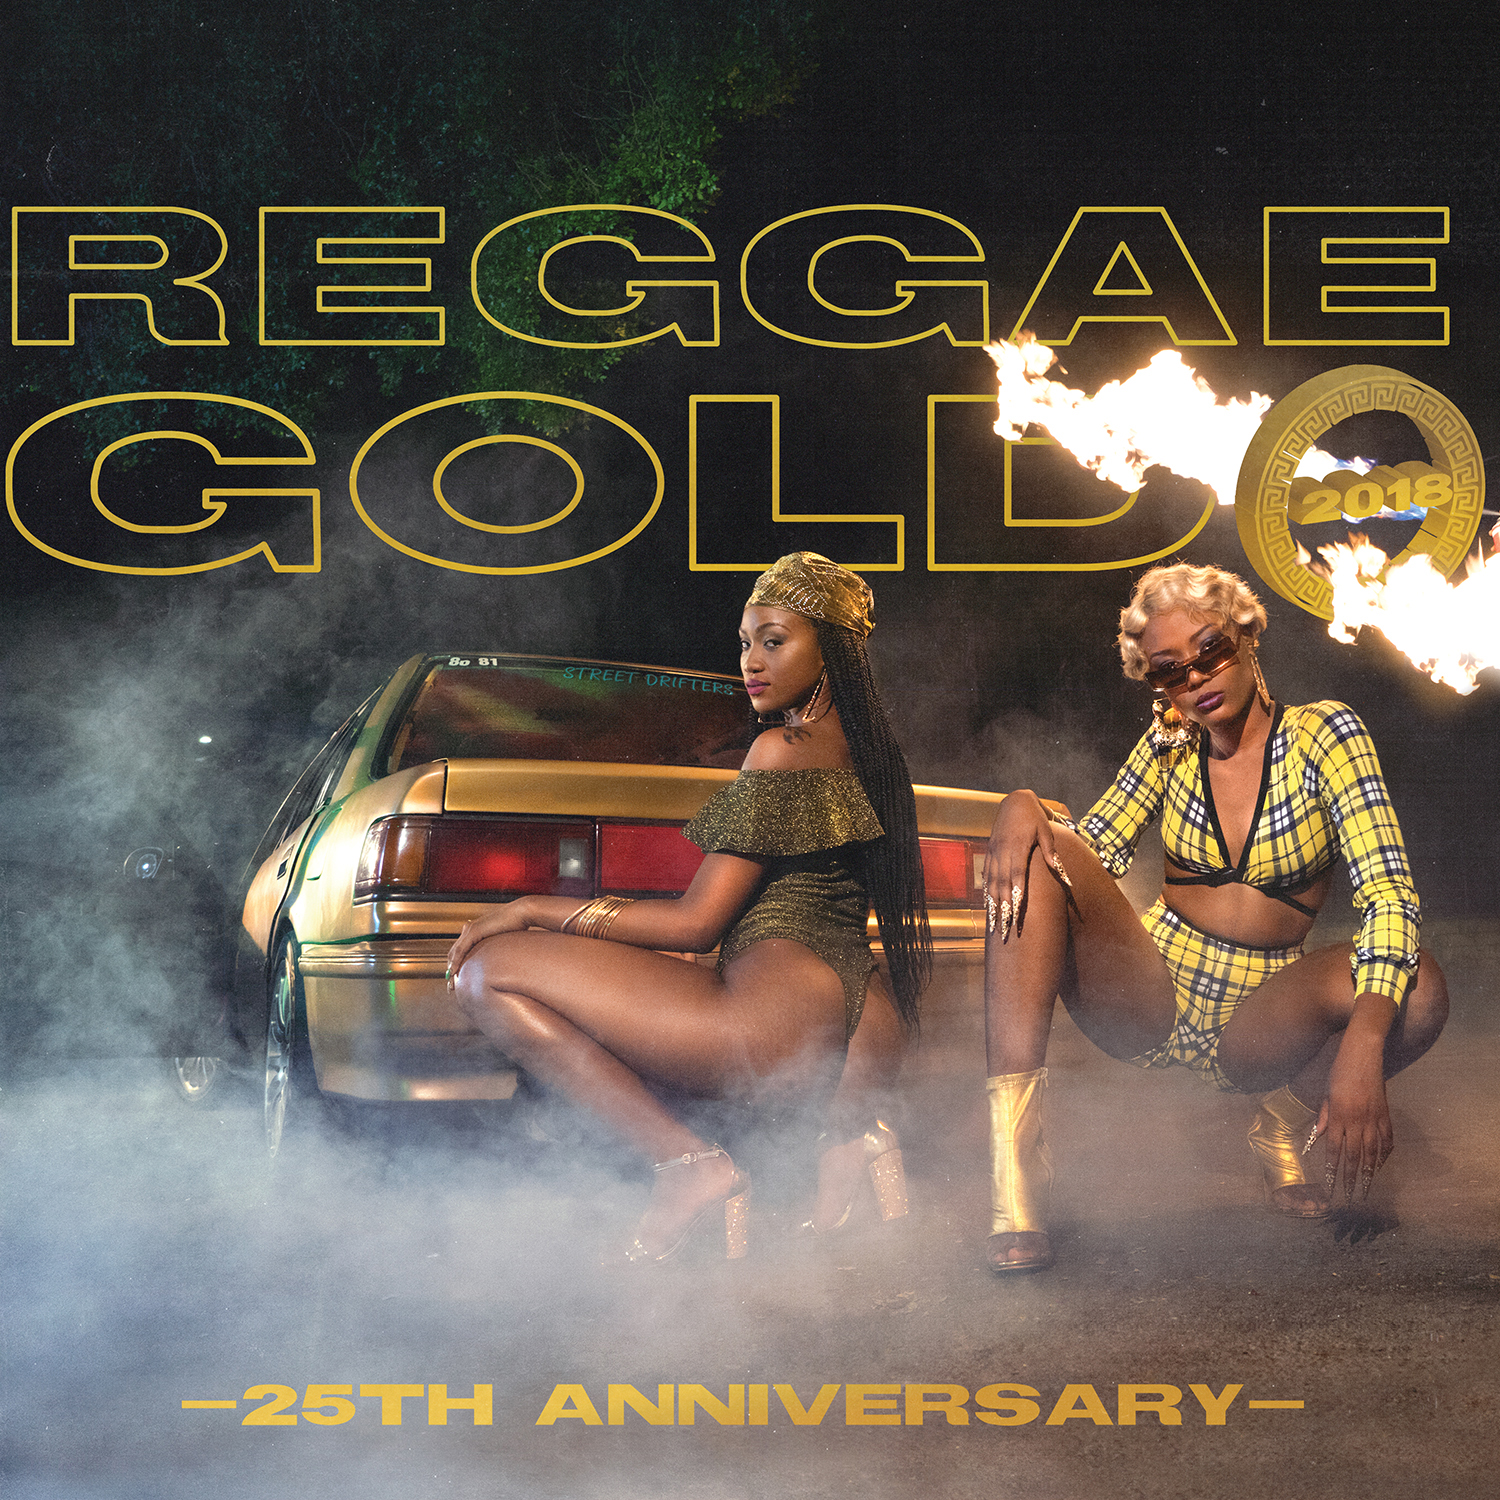 25TH ANNIVERSARY OF REGGAE GOLD 2018 OUT JULY 27TH ...